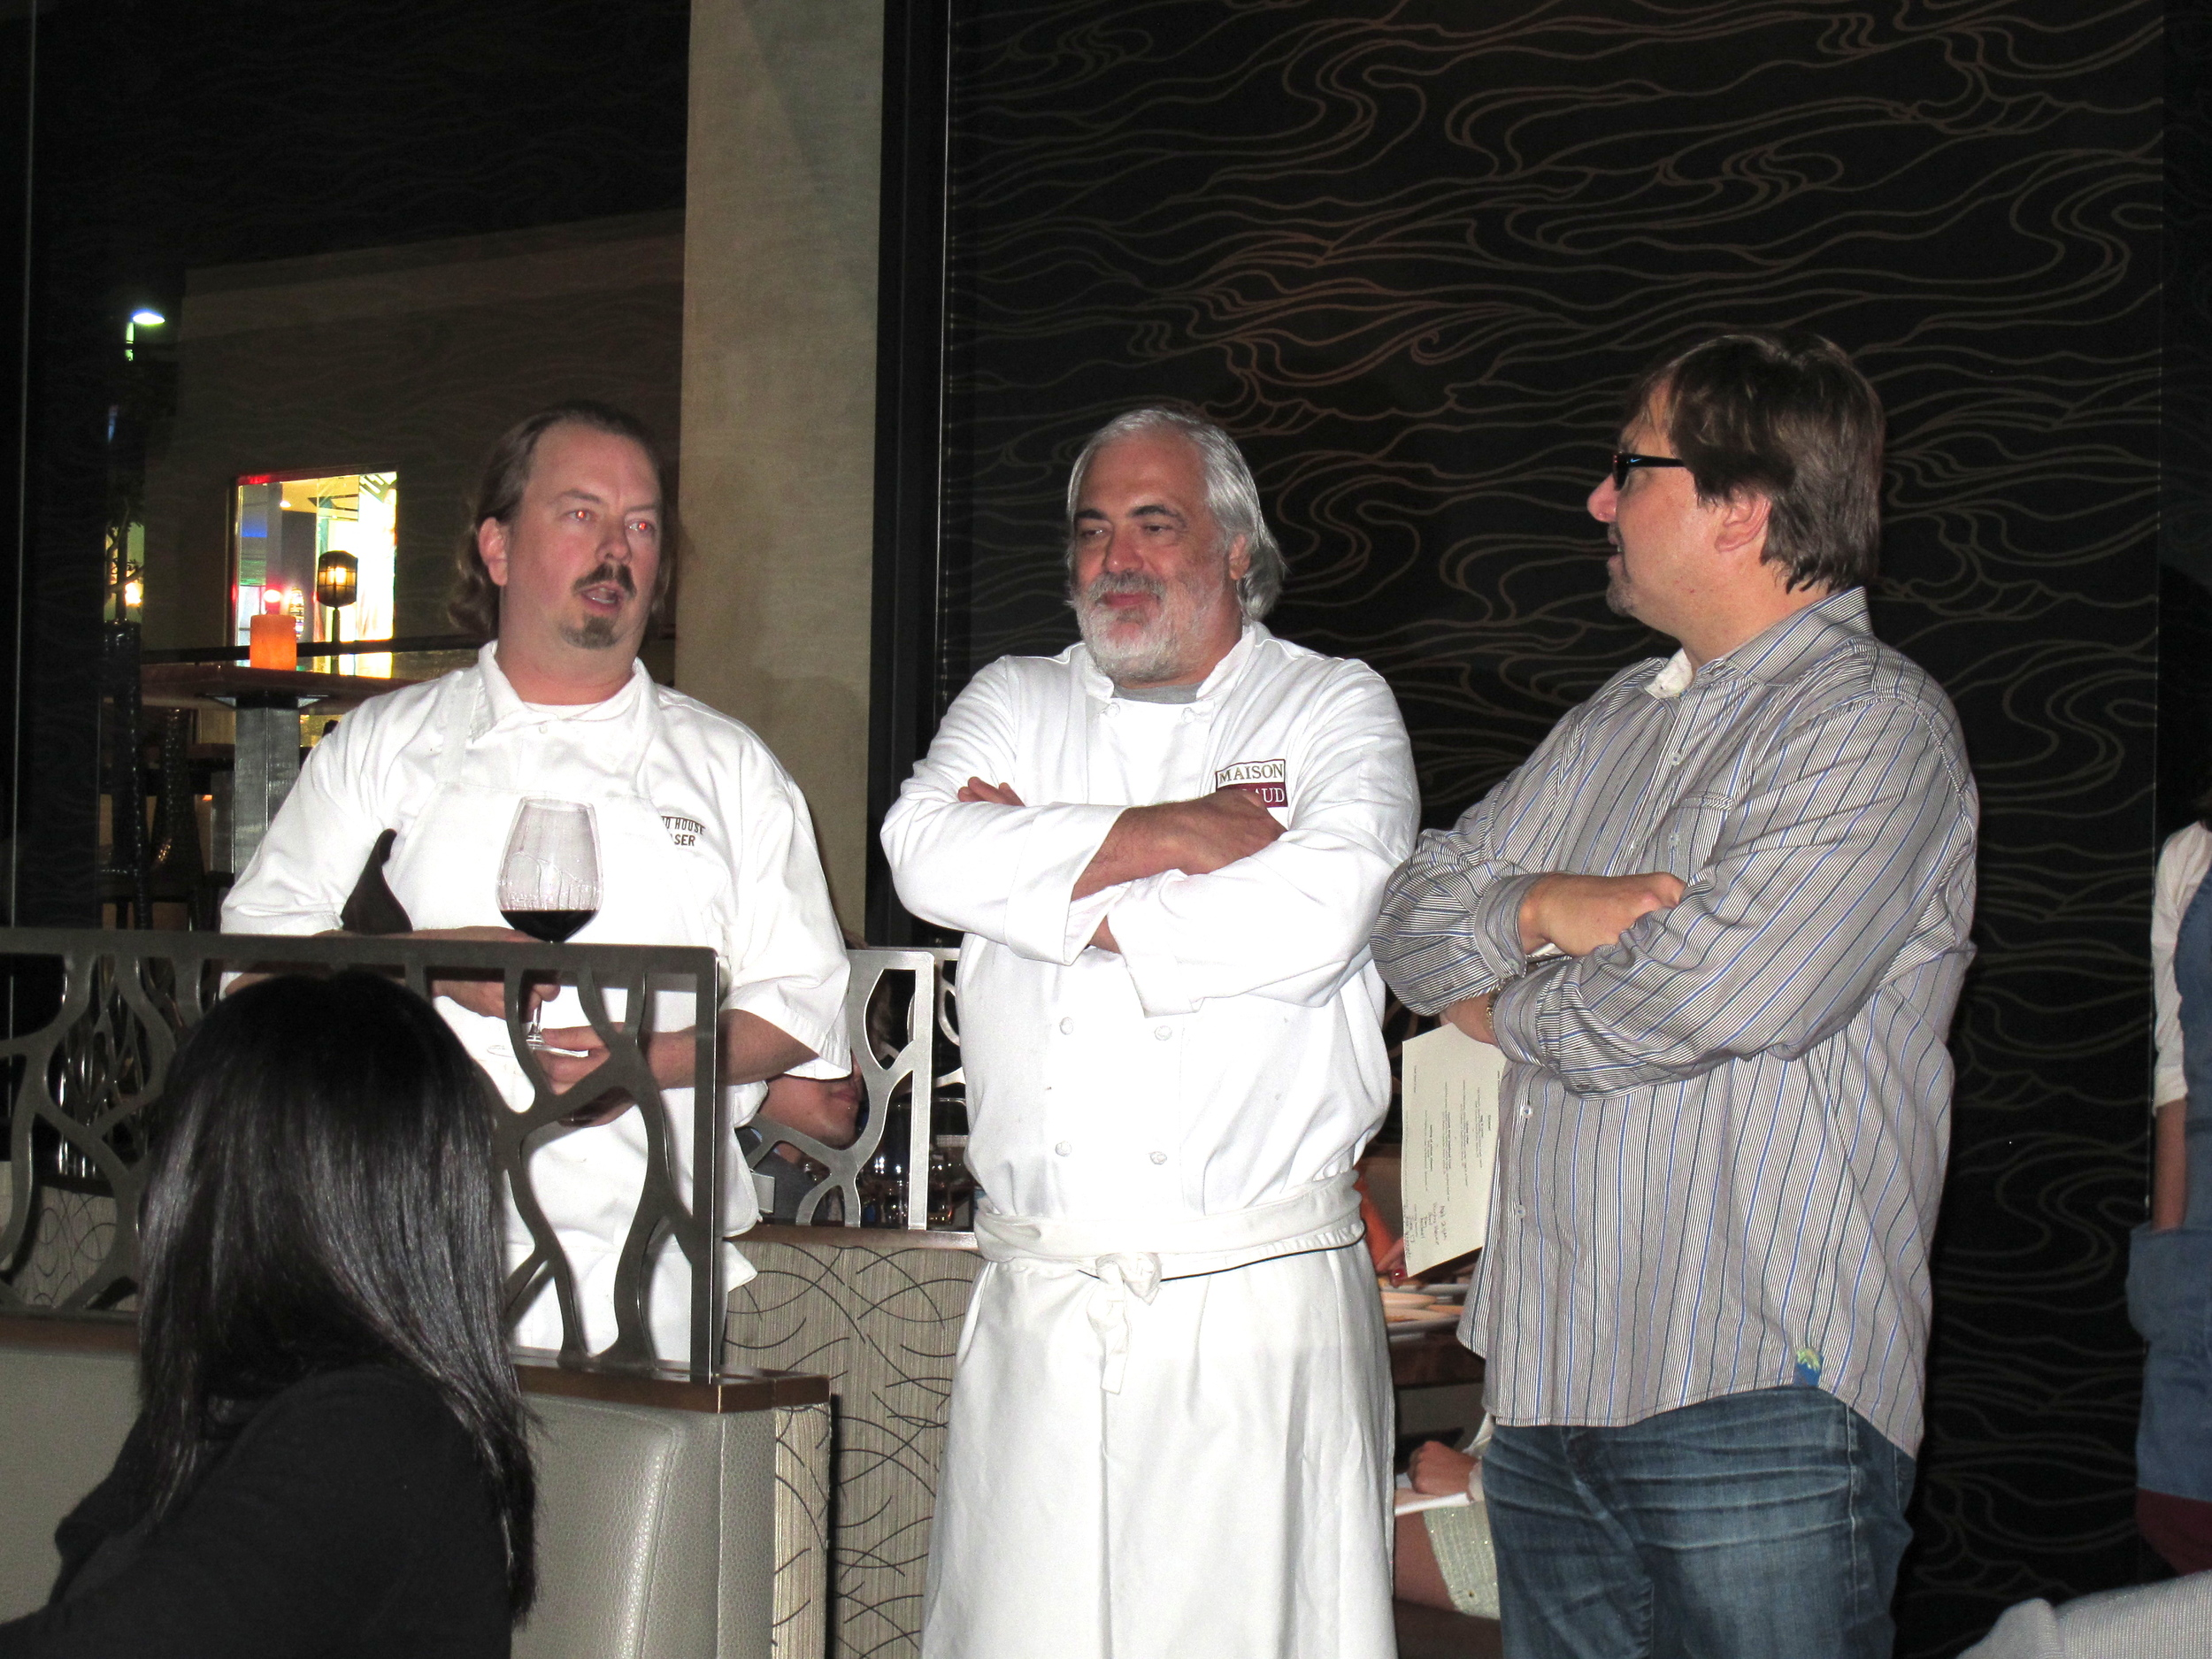 Strand House chef Neal Fraser, French chef Alain Giraud, and Strand House owner Michael Zislis